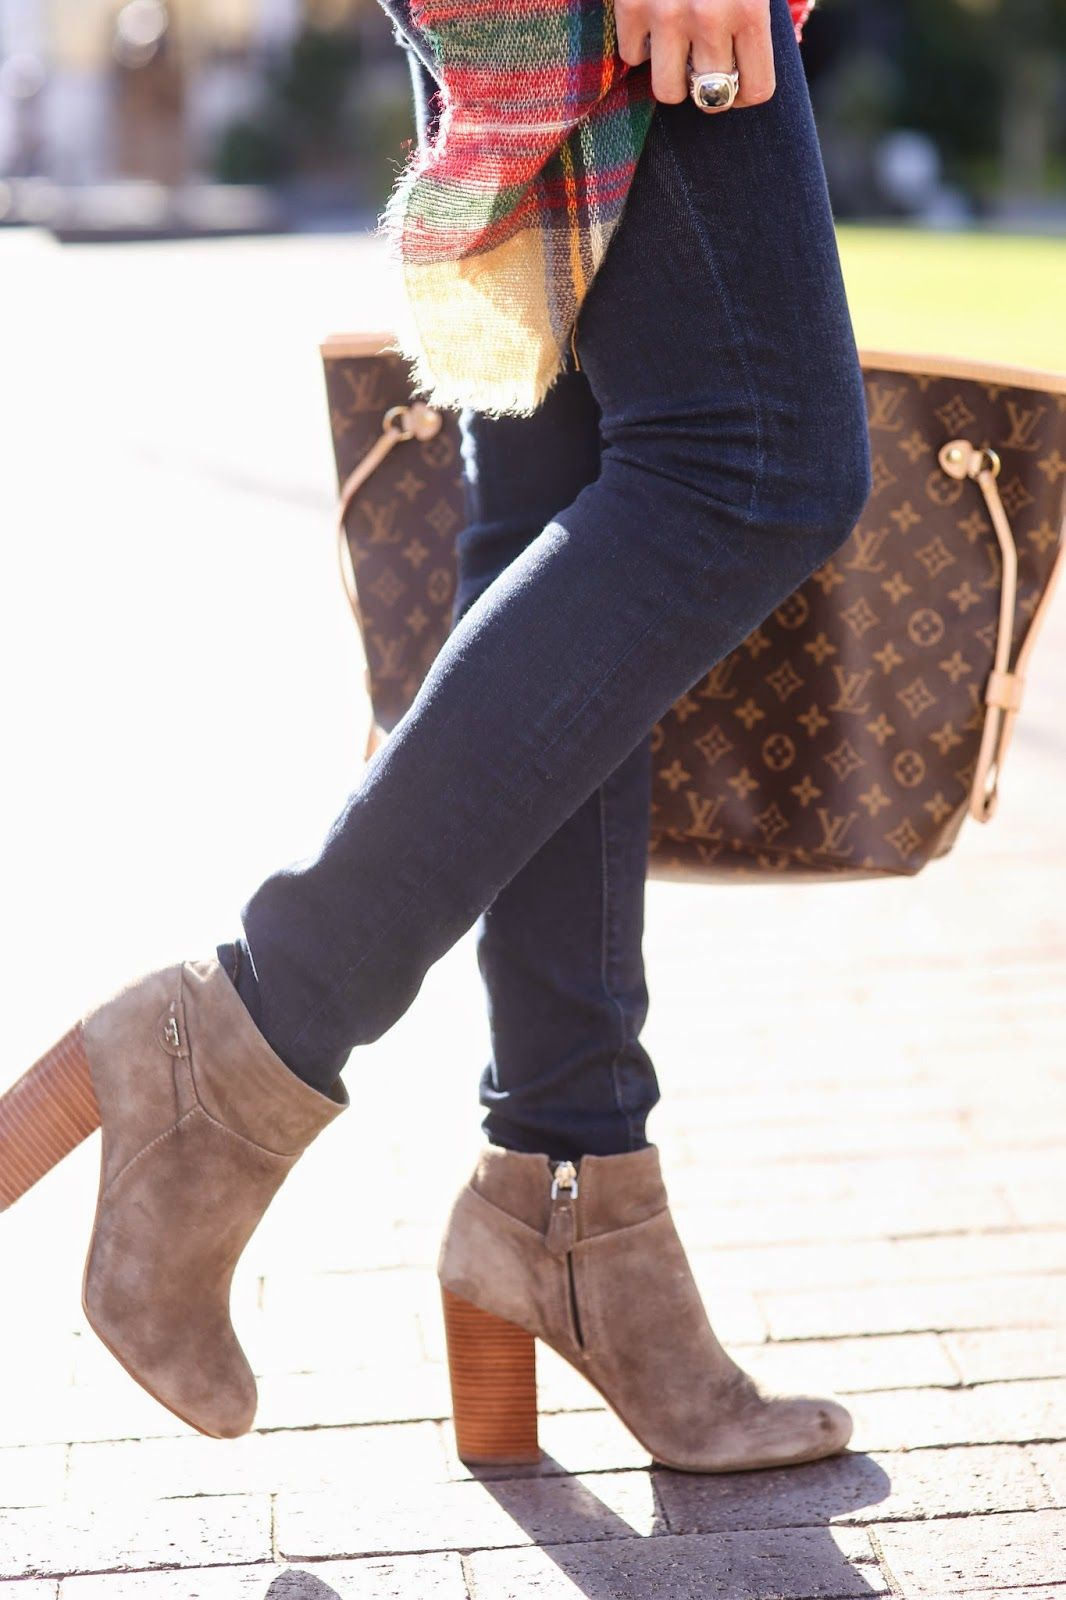 989e98c97b6 Tory Burch Booties Love the look of these boots w skinny jeans. Would look  so cute on you